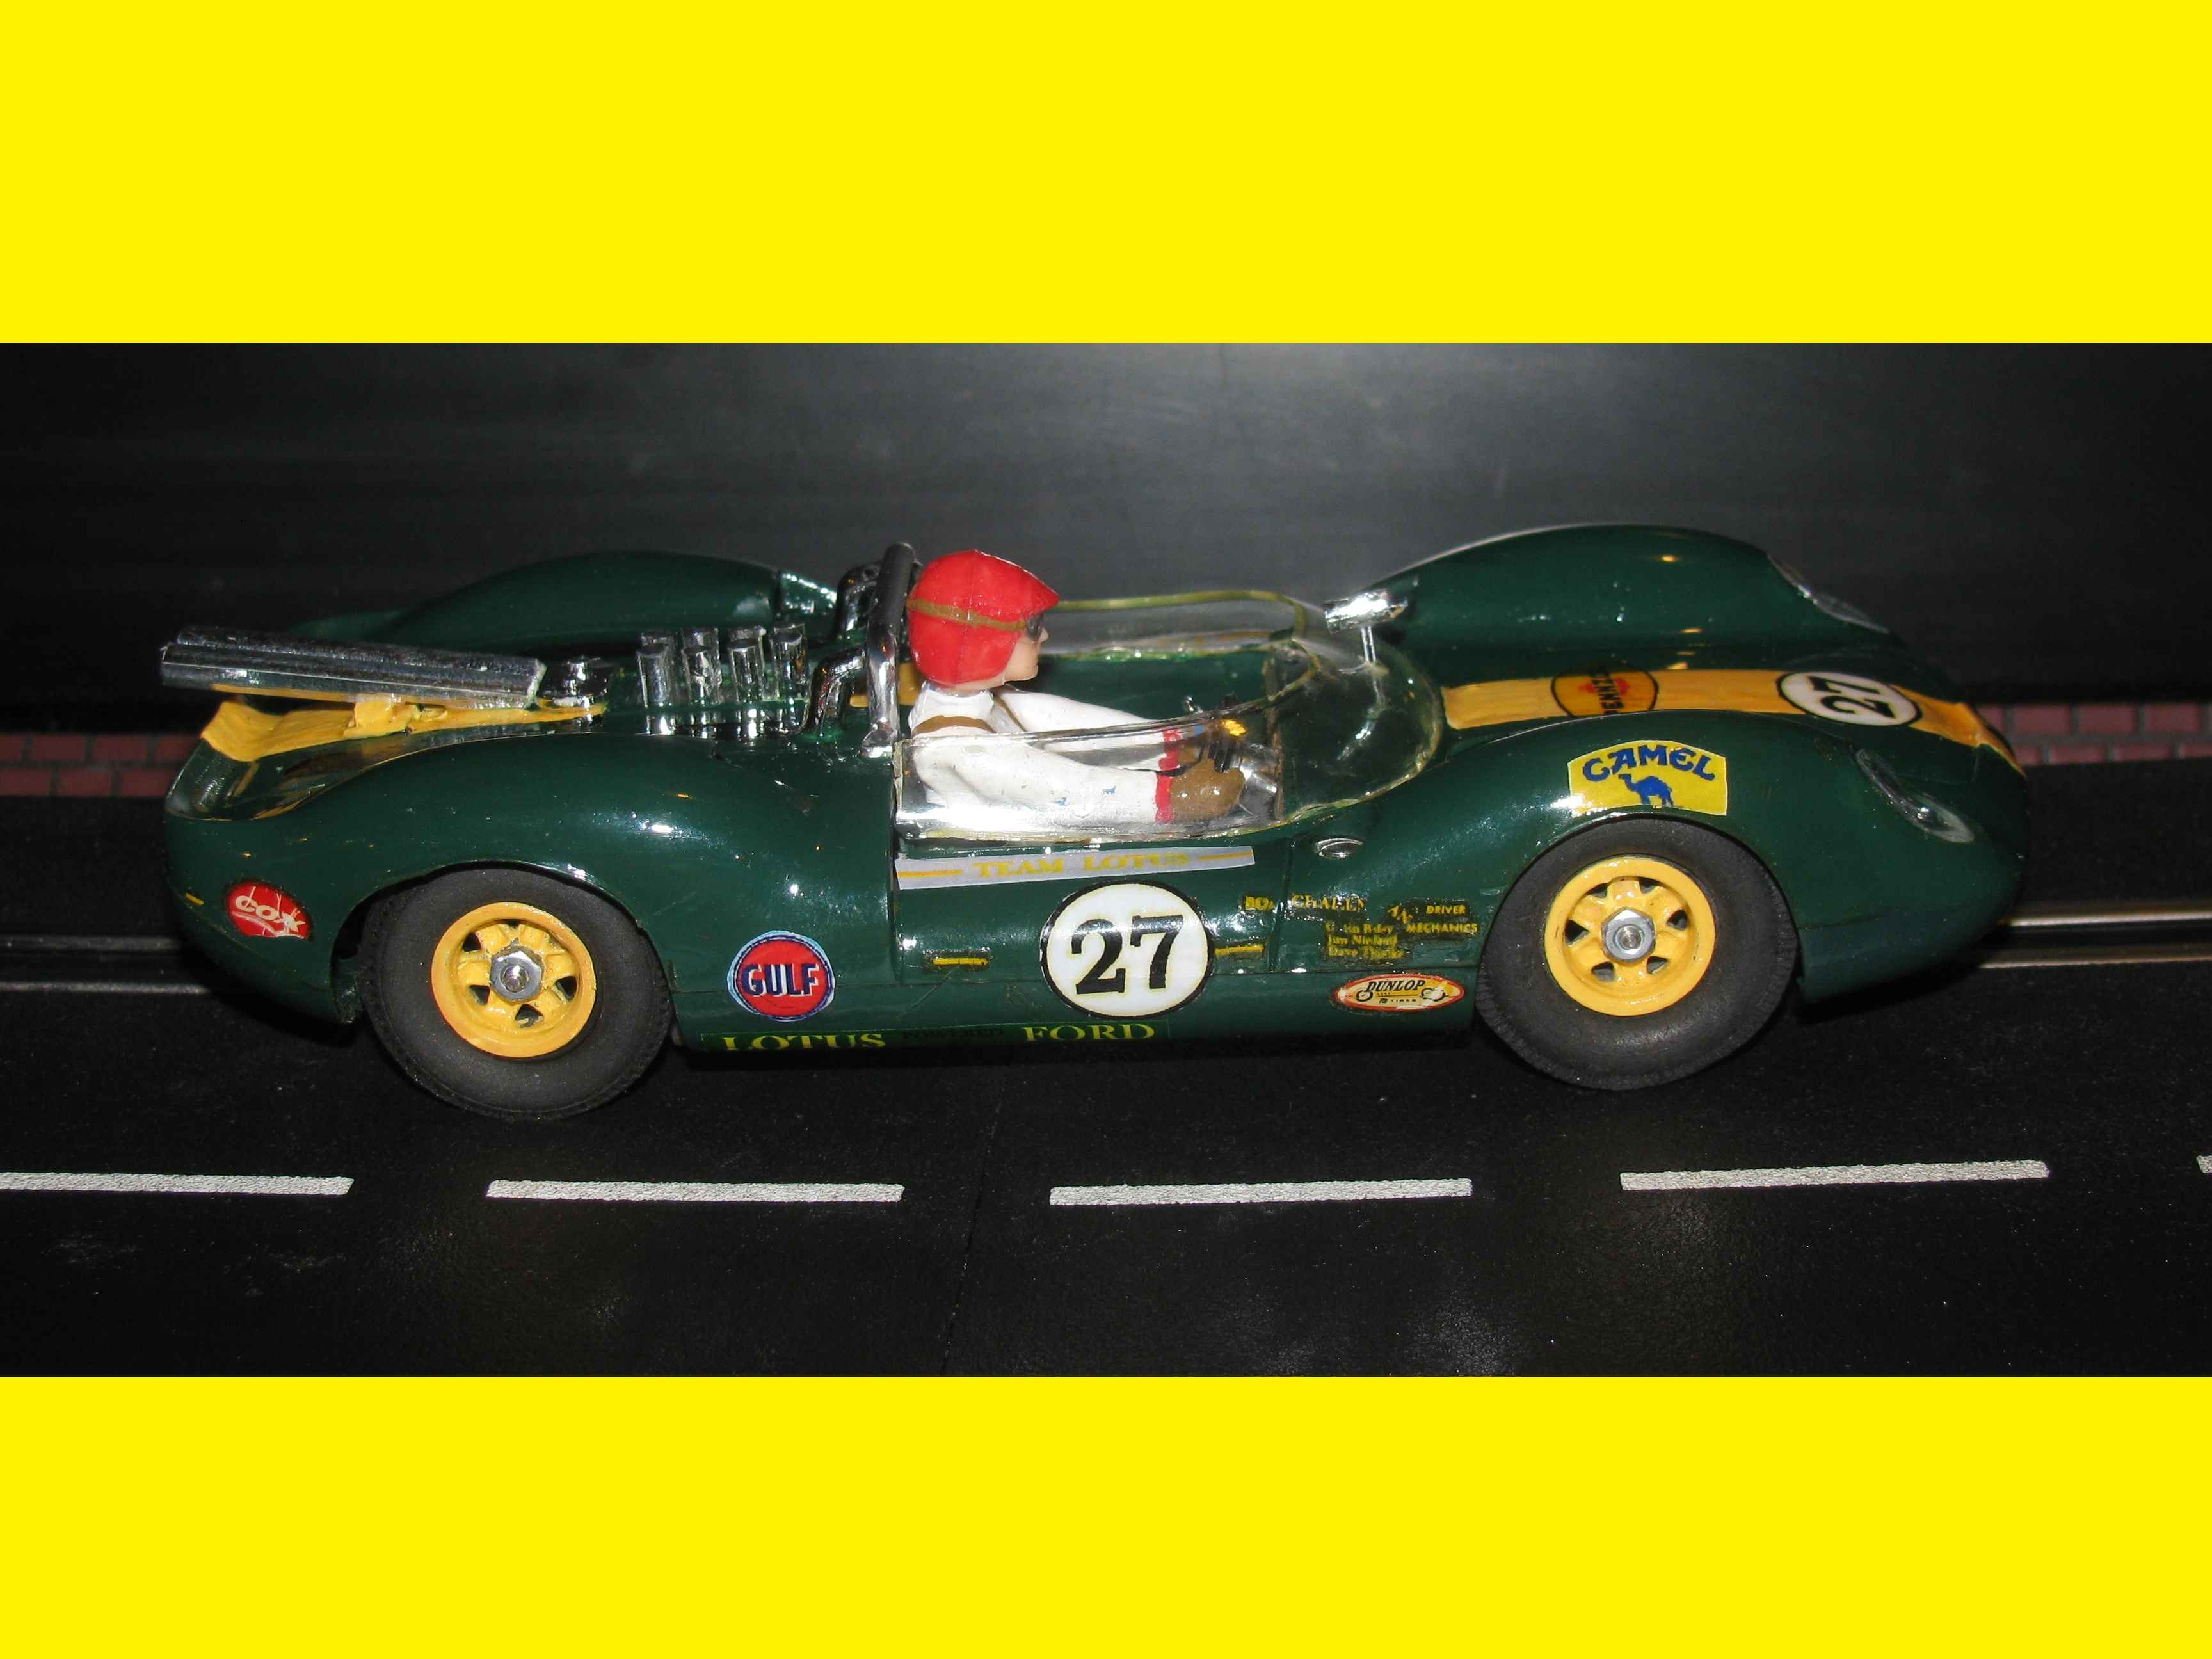 * SOLD * * Winter is coming SALE * Vintage COX Lotus Type 40 Slot Car in 1/24 Scale Car #27